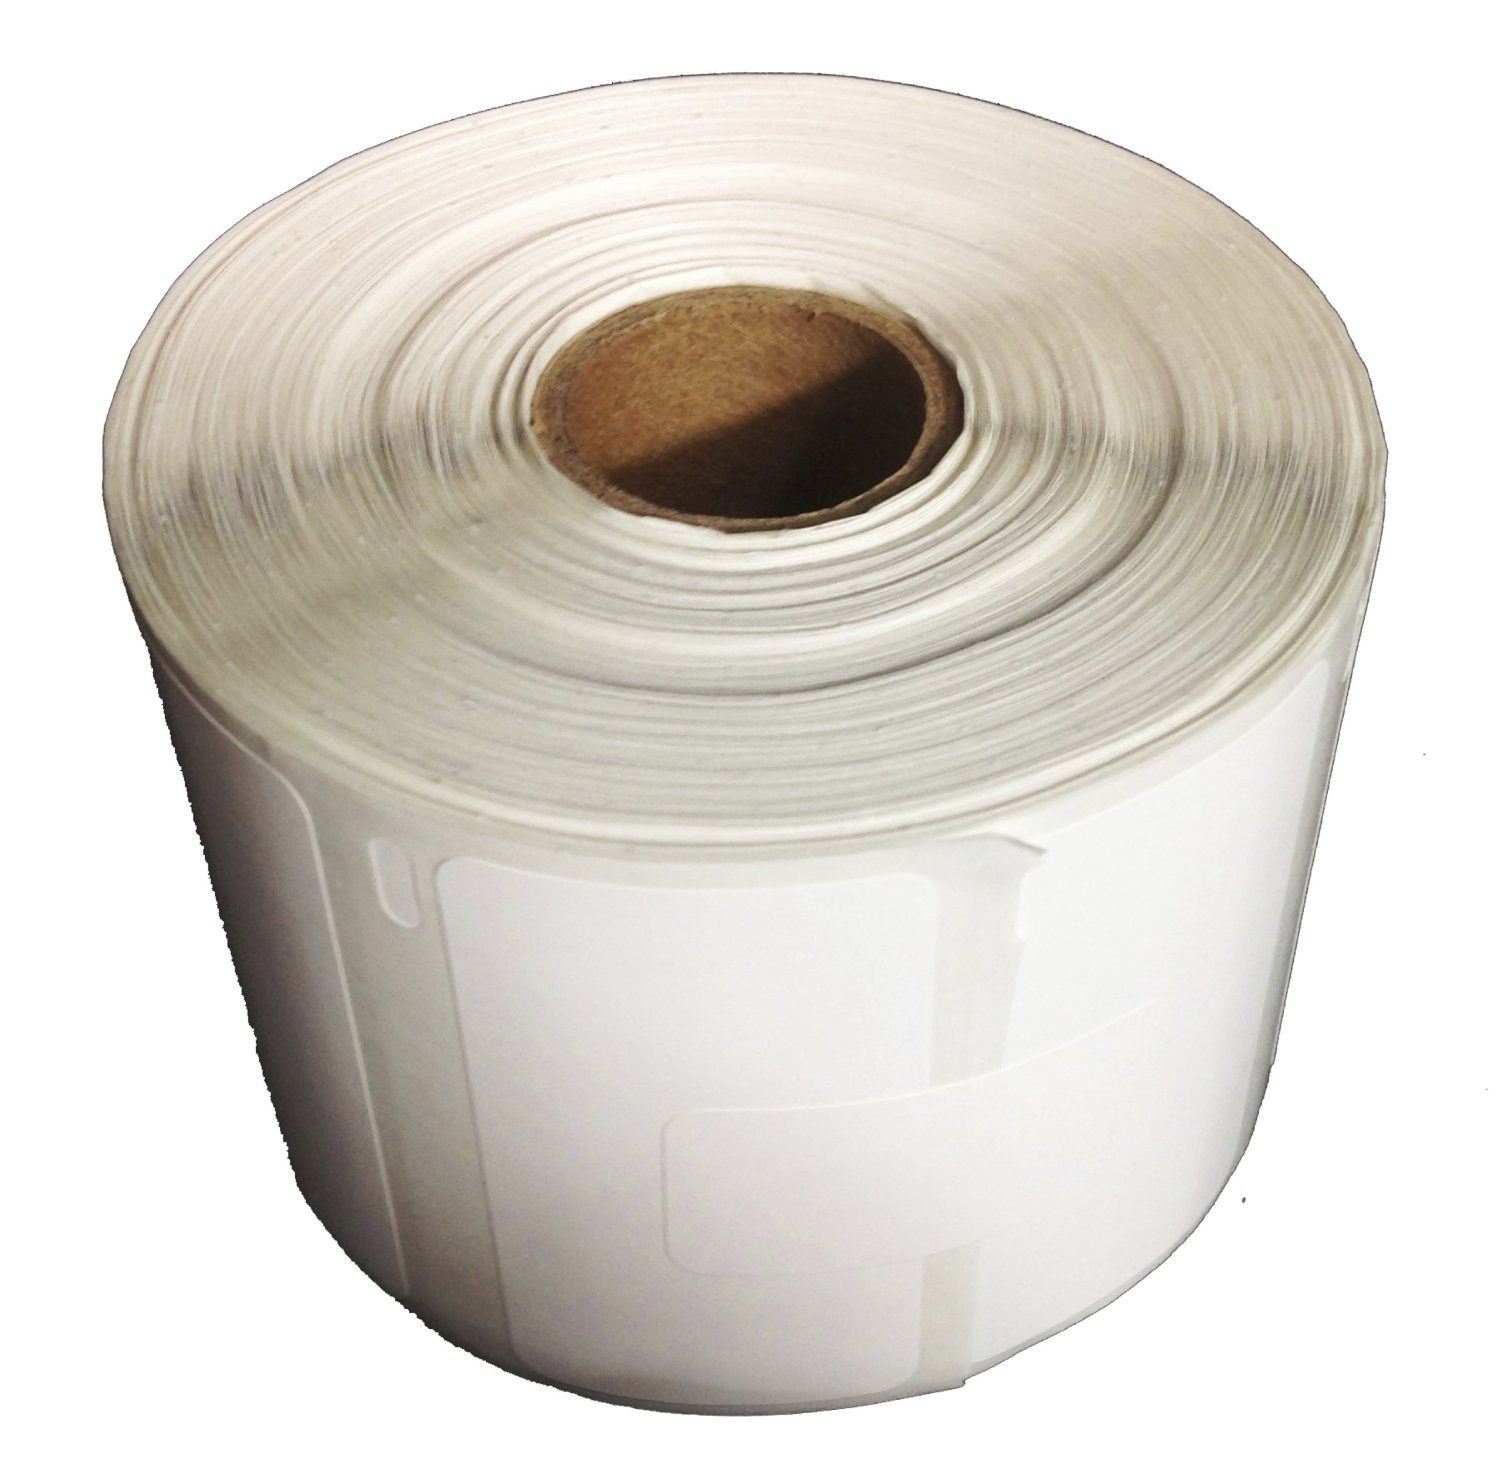 "Removable Adhesive Dymo Compatible 30334 Identification Labels - 2-1/4"" x 1-1/4"", 1000 Labels Per Roll"